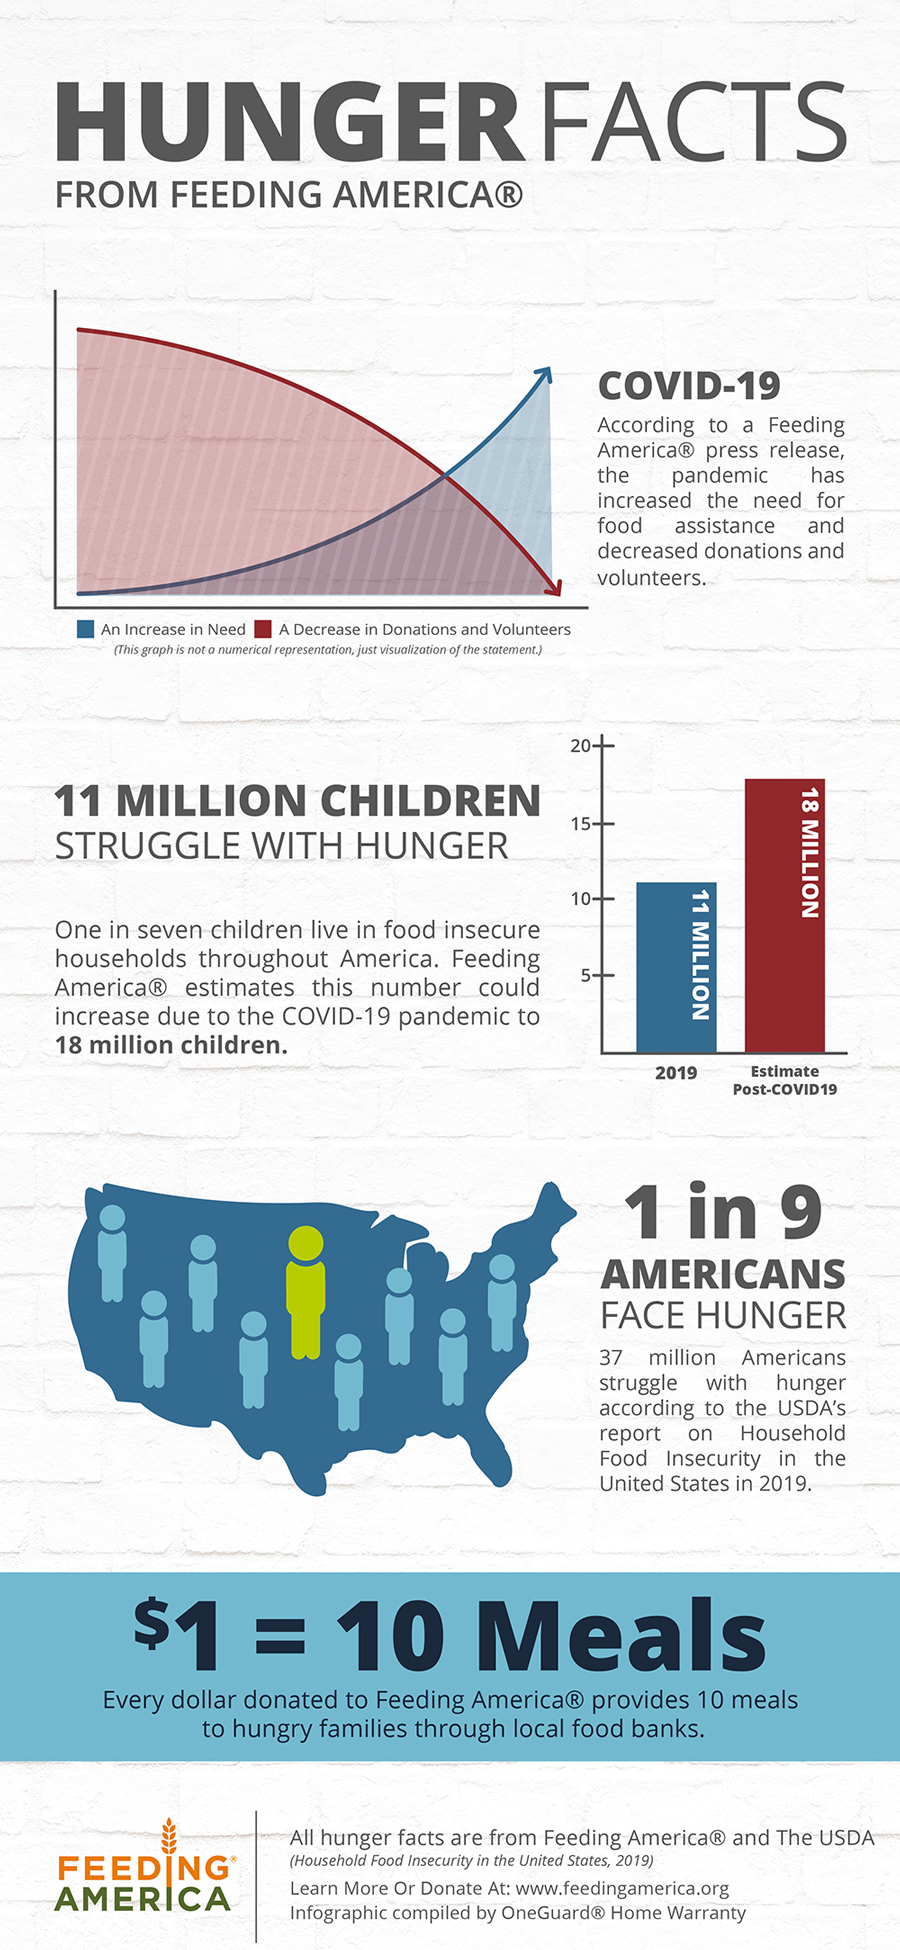 Facts about hunger in America provided by Feeding America in conjunction with OneGuard's donations.